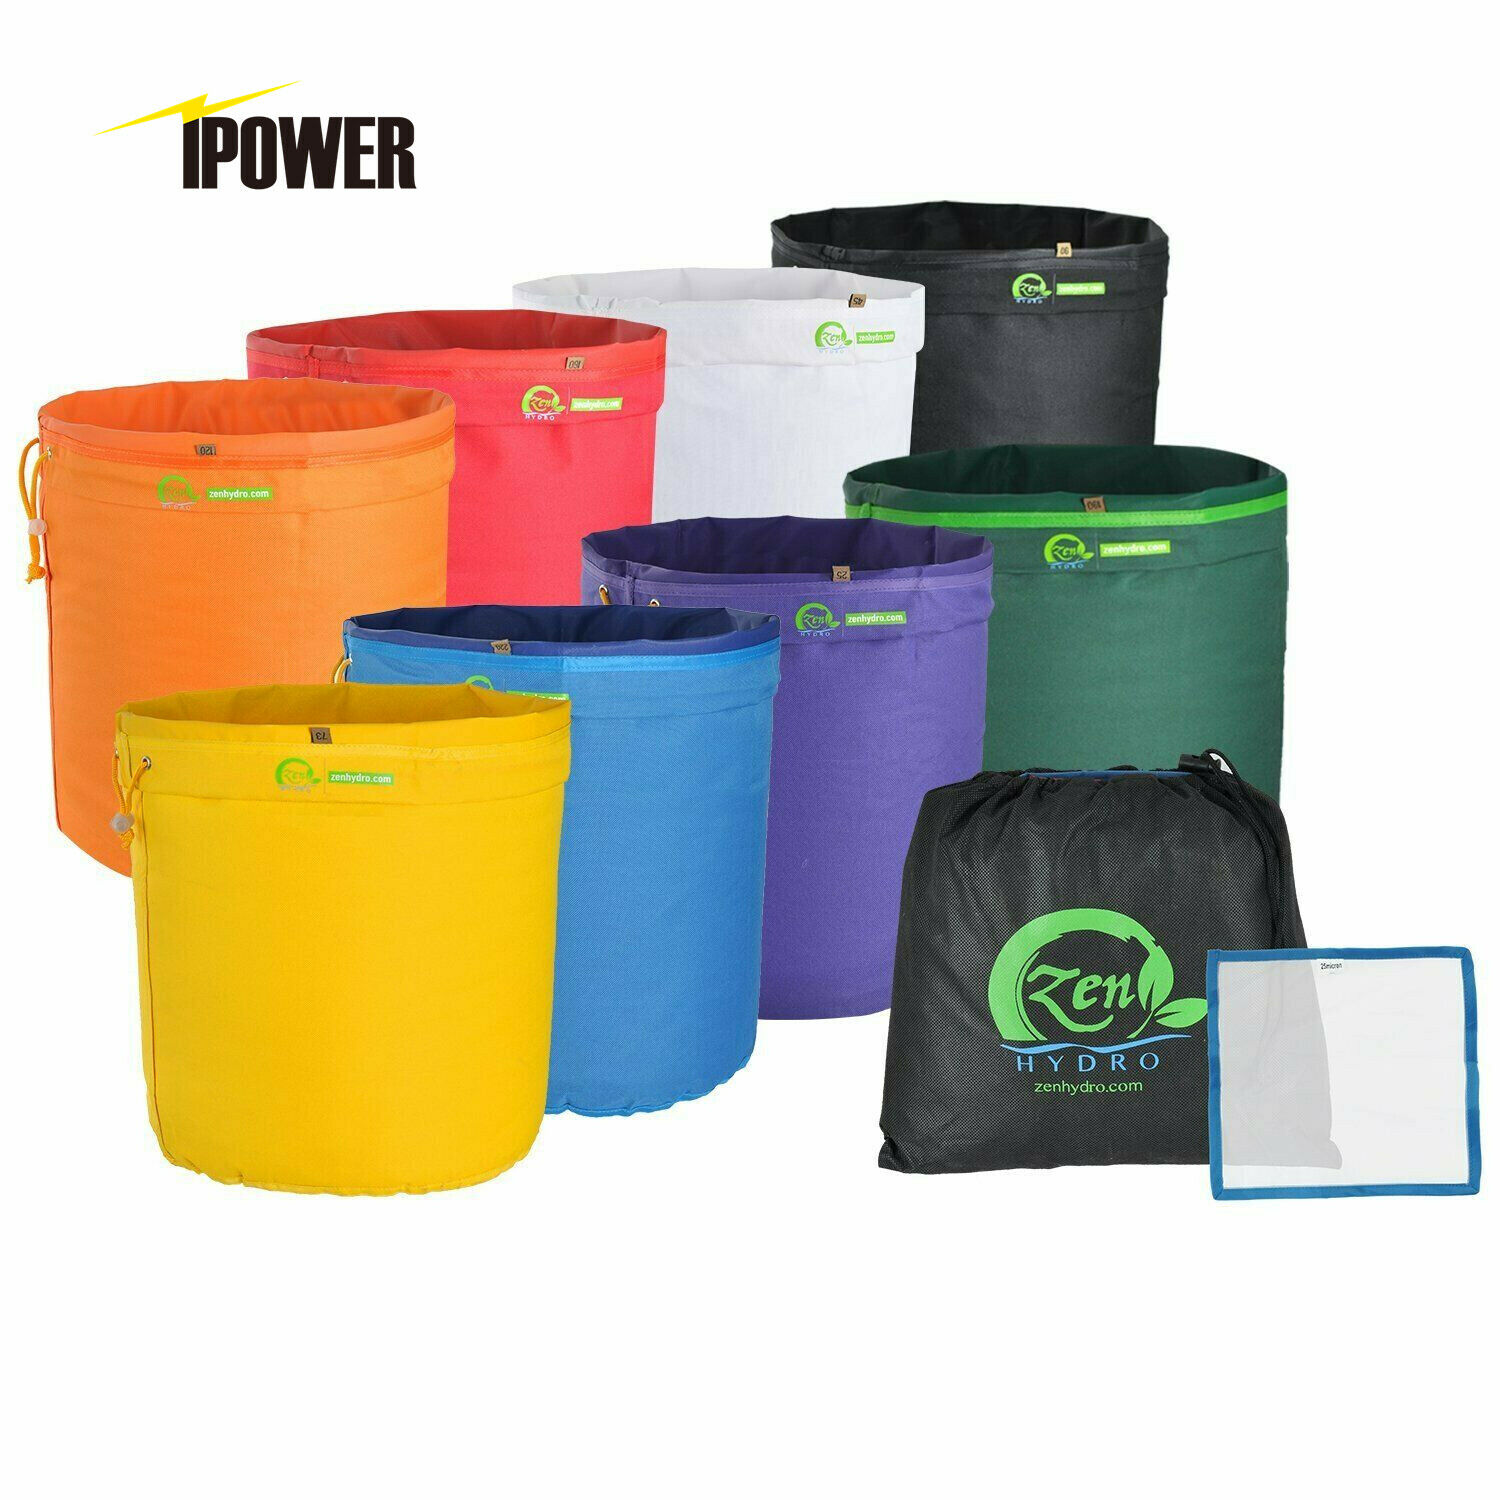 iPower 5-Gallon 5-Bag Herbal Ice Bubble Hash Bag Essense Extractor Kit Free Carr